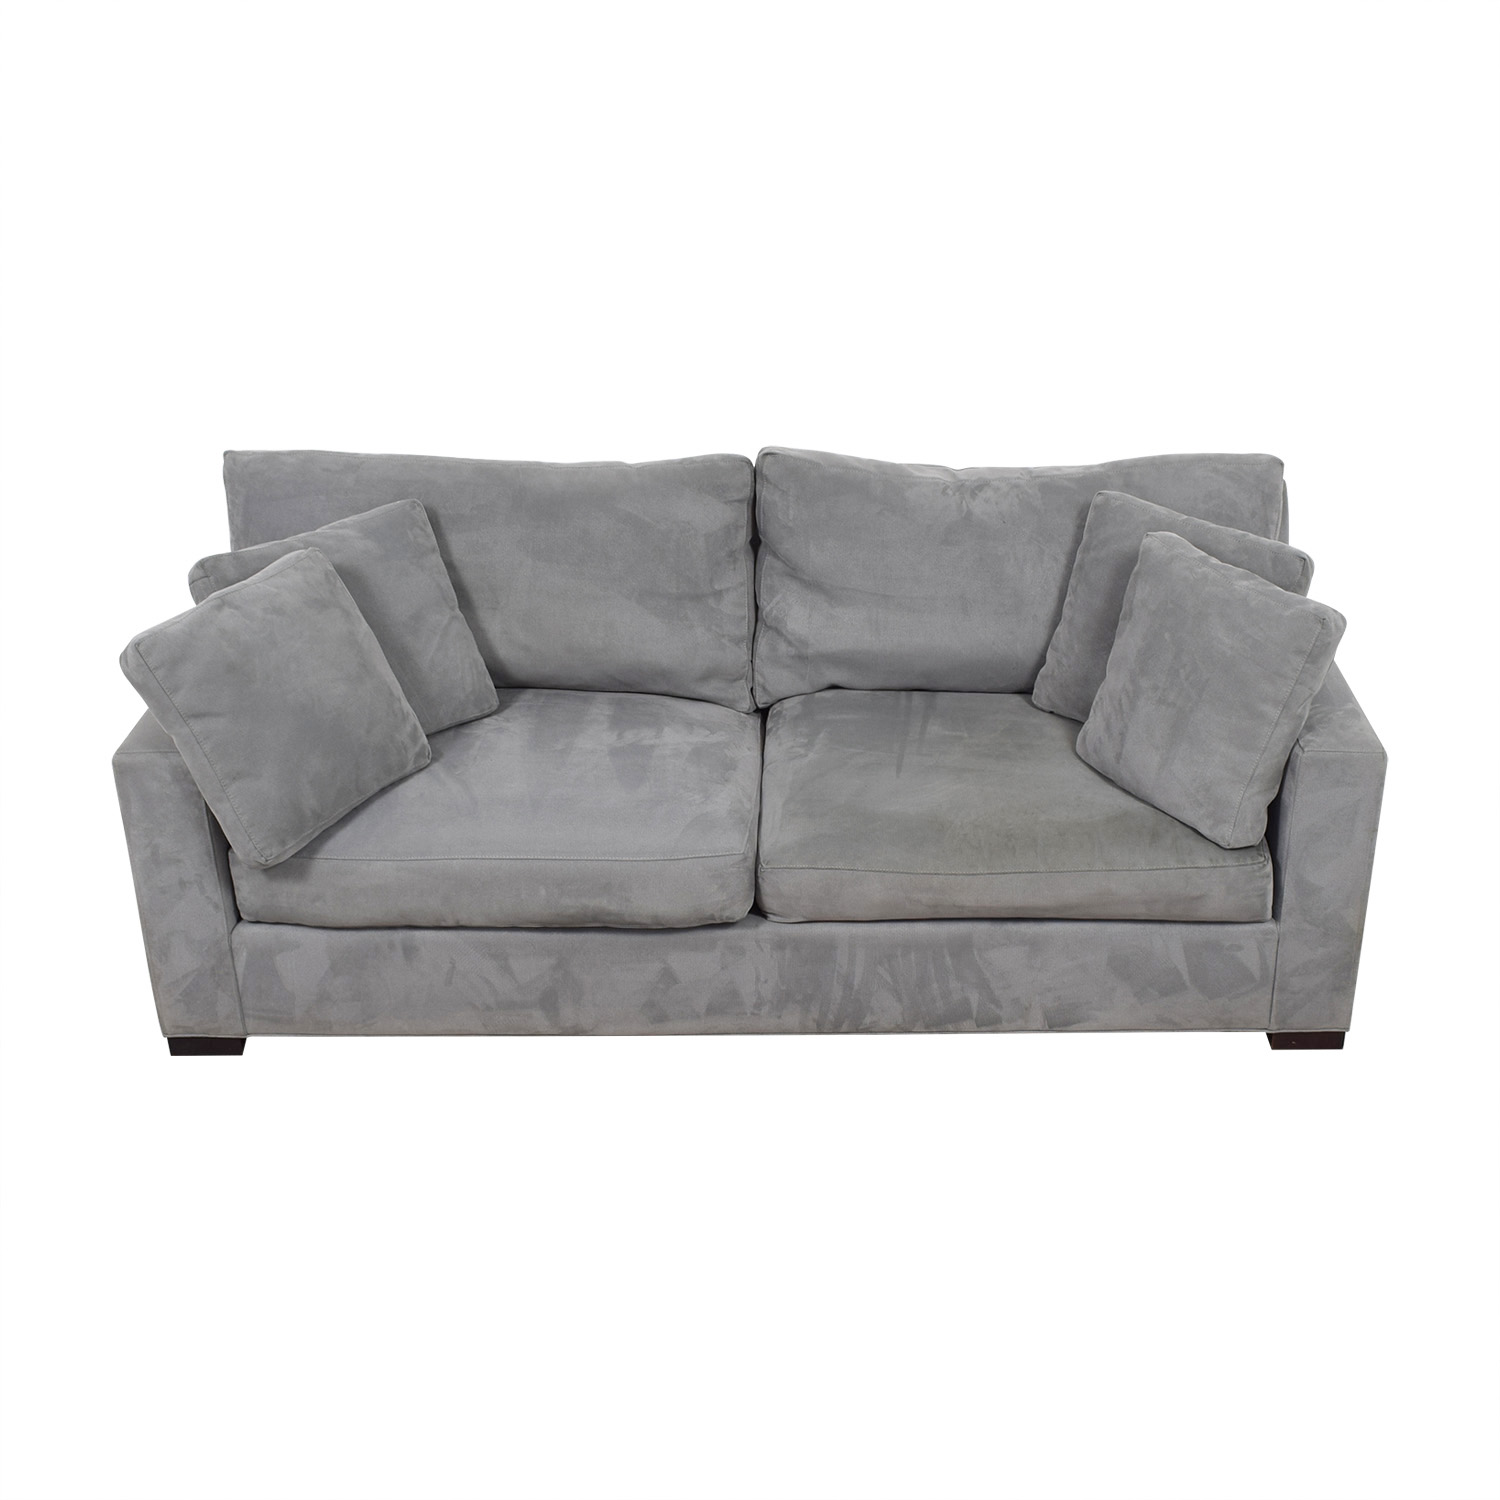 Crate & Barrel Crate & Barrel Gray Two-Cushion Couch coupon